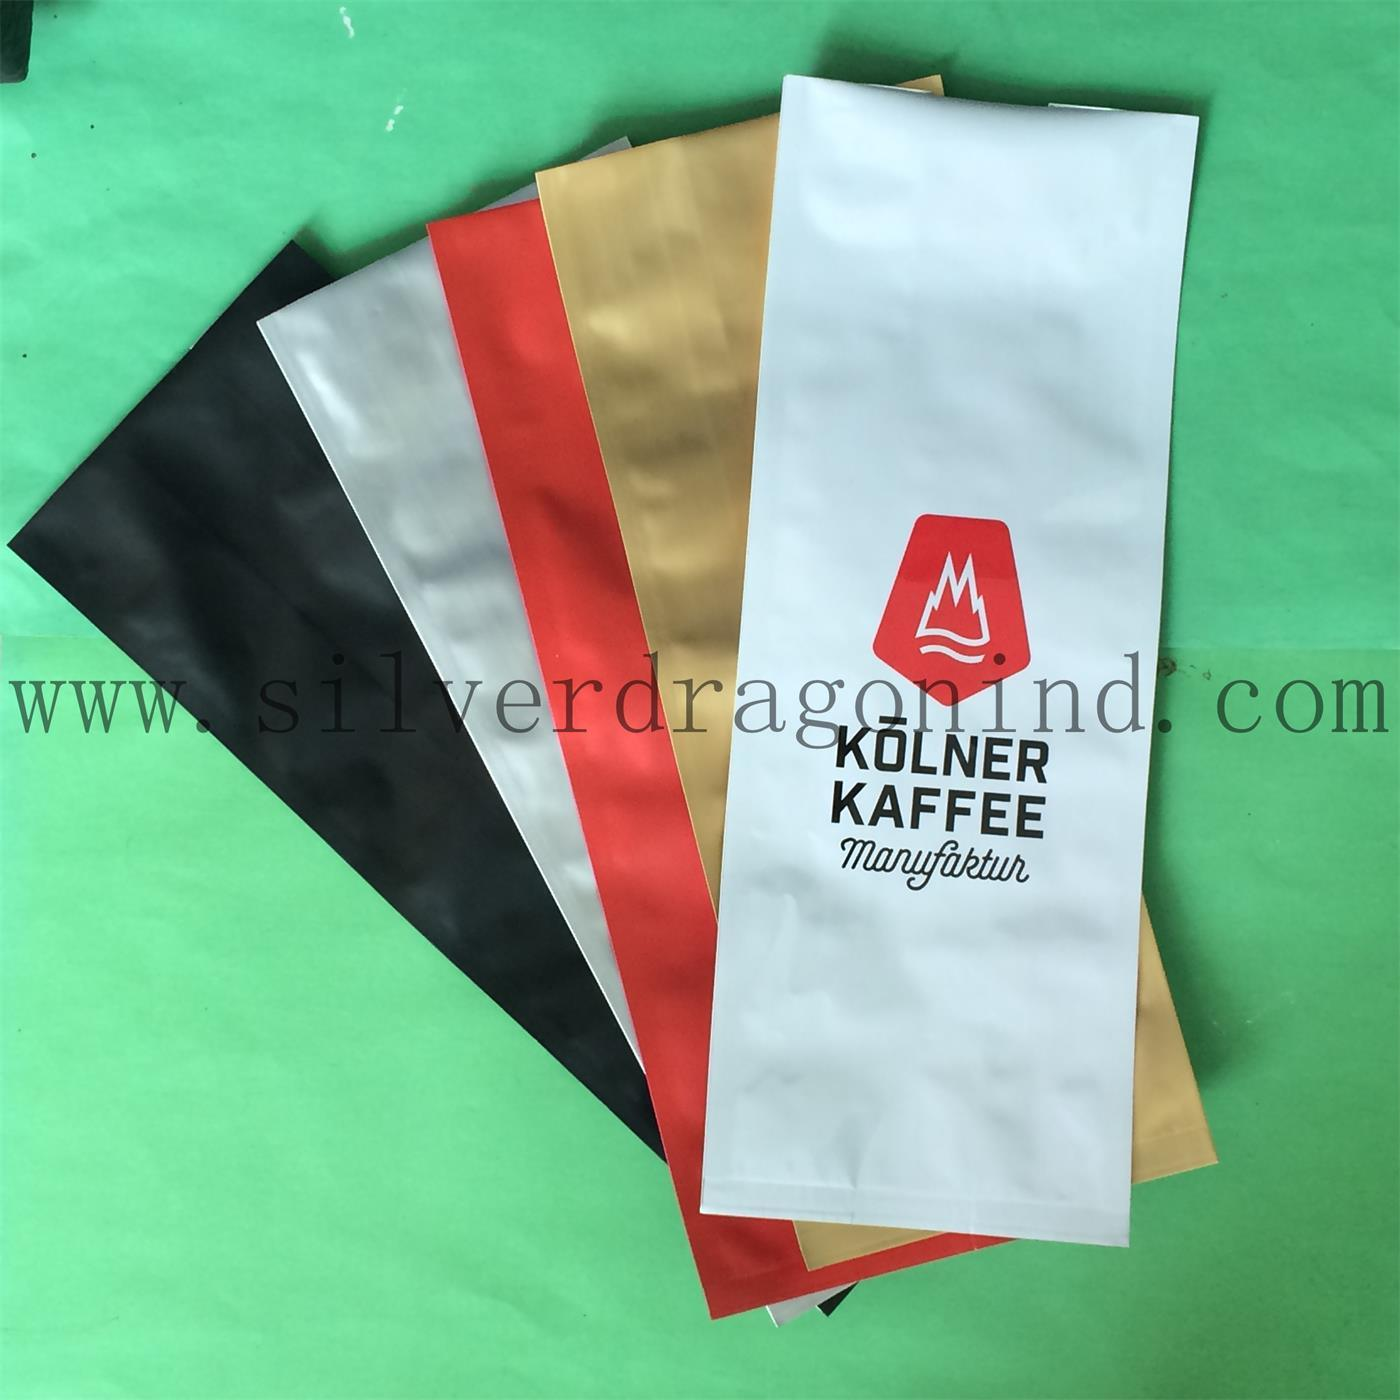 Top Quality Plastic Coffee Bag with Valve for Coffee Bean Packaging